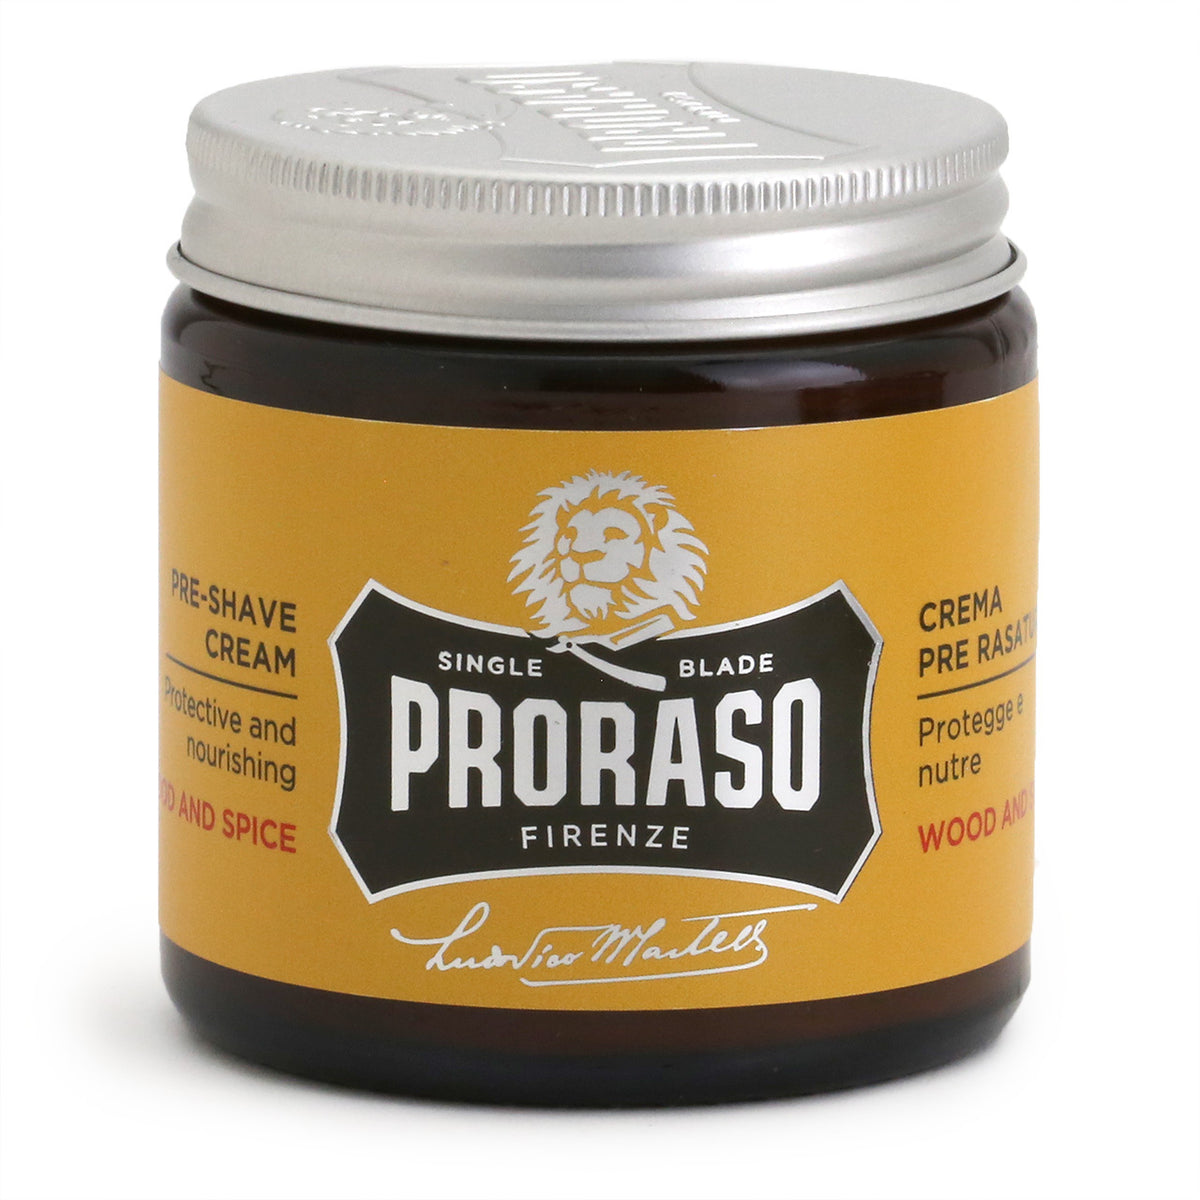 Proraso Pre-Shave Cream 100ml - Wood & Spice